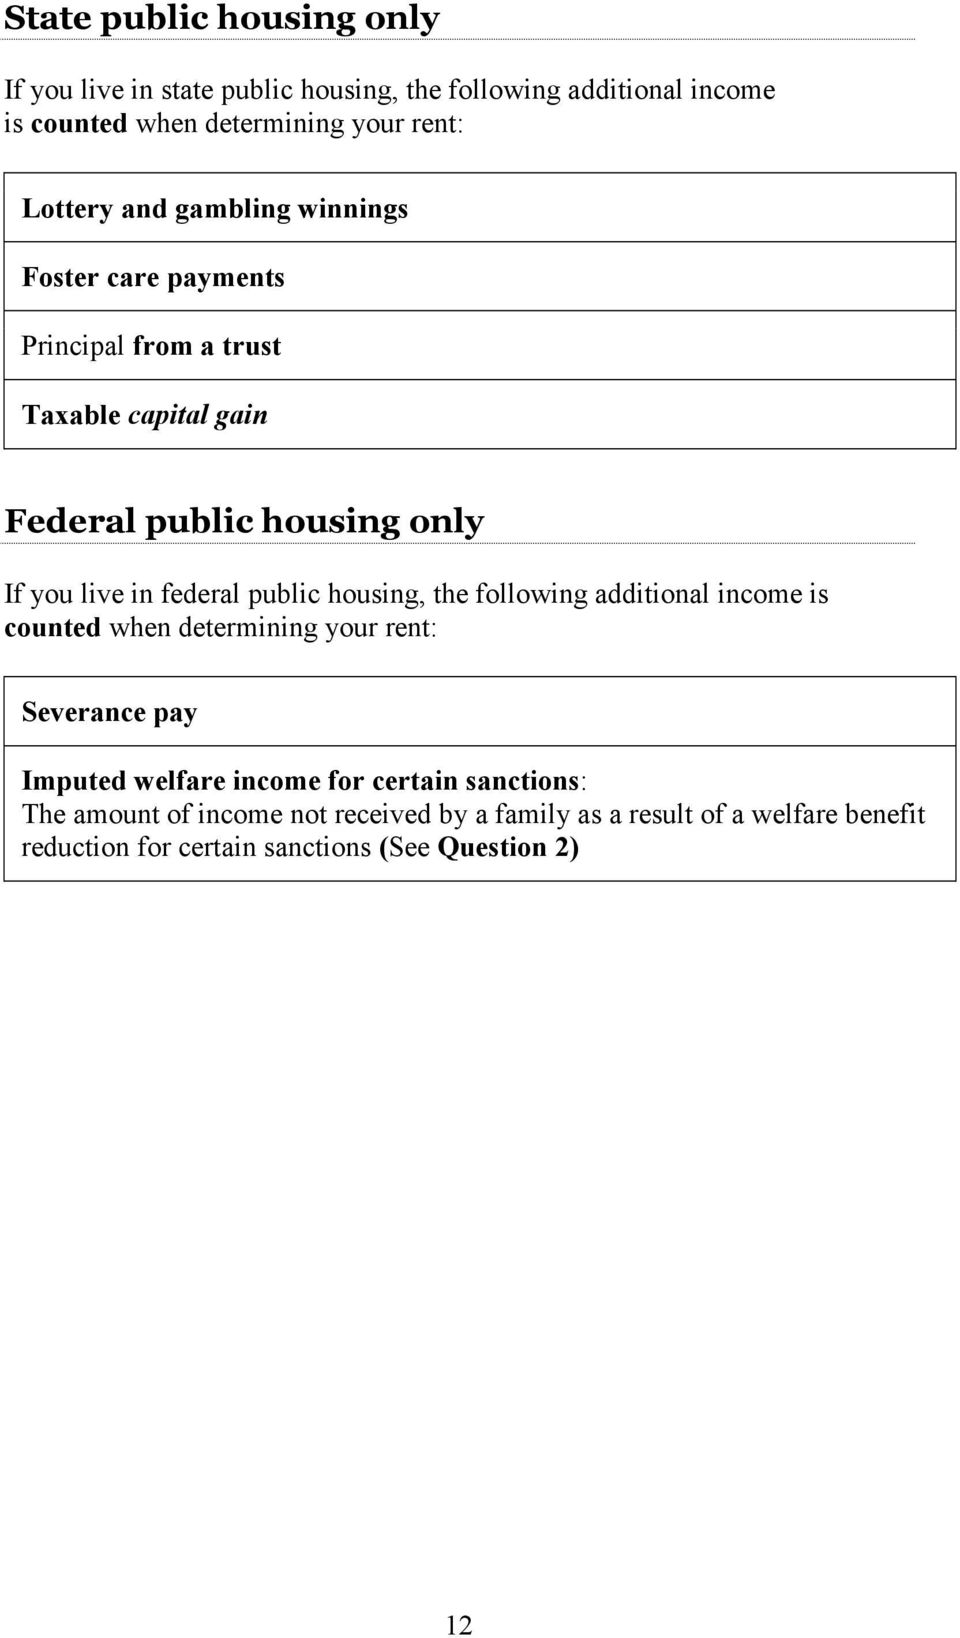 federal public housing, the following additional income is counted when determining your rent: Severance pay Imputed welfare income for